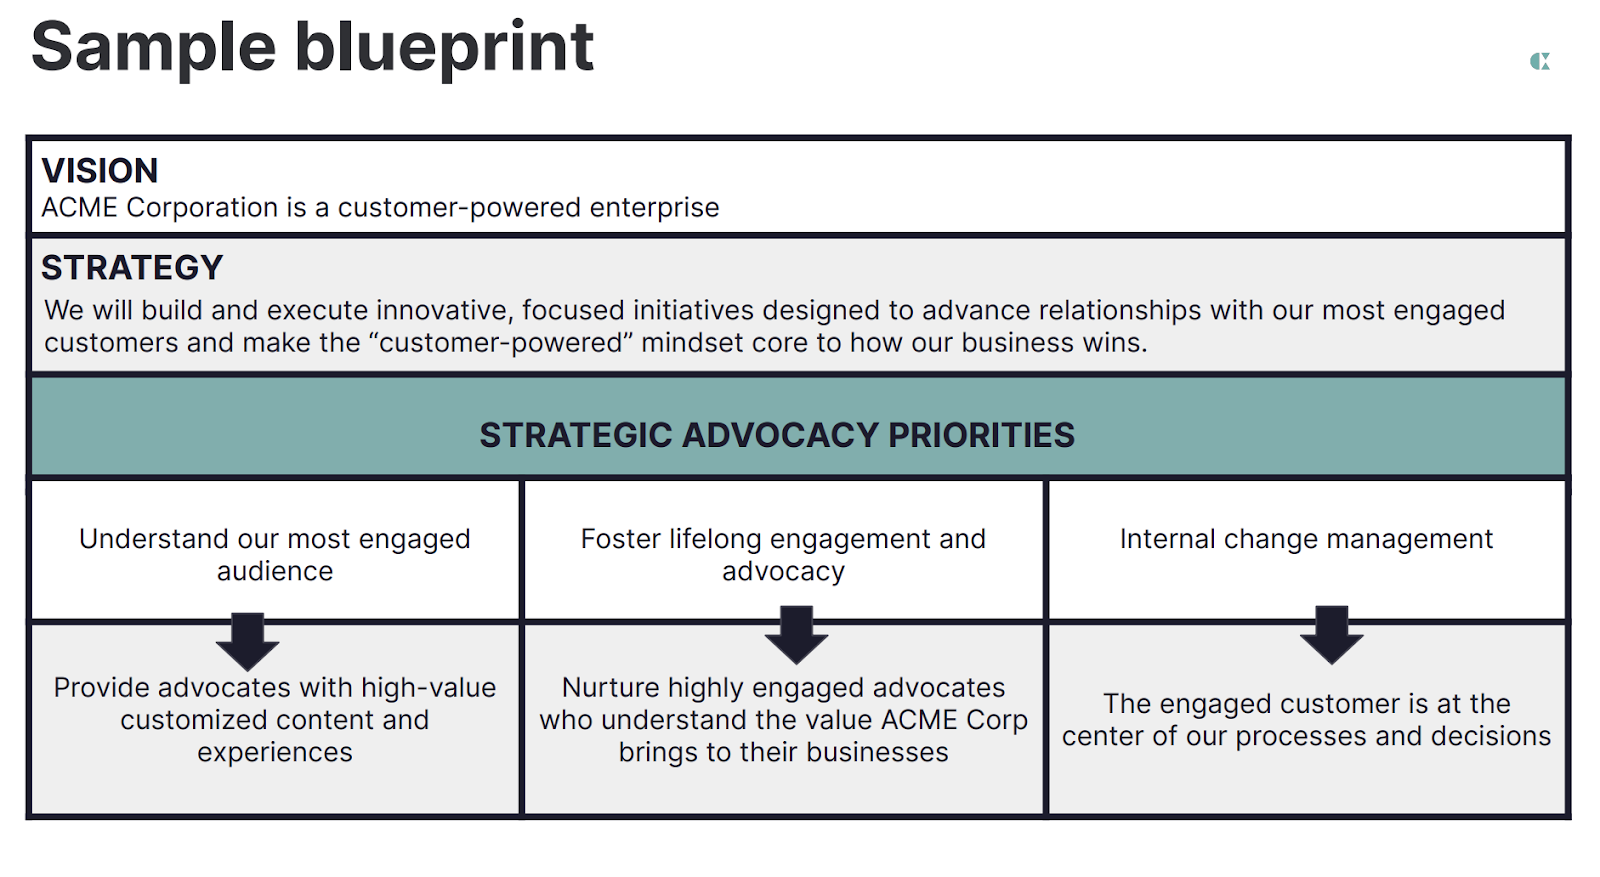 Table with example of company vision, strategy and strategic advocacy priorities